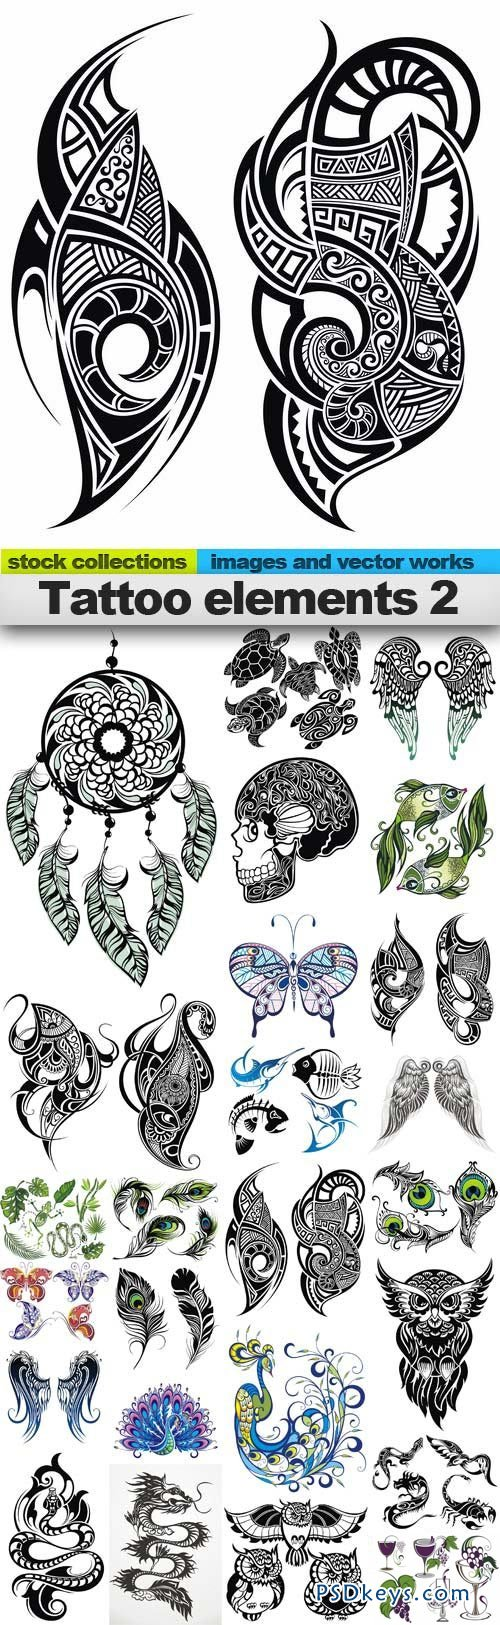 Tattoo elements 2 25xEPS